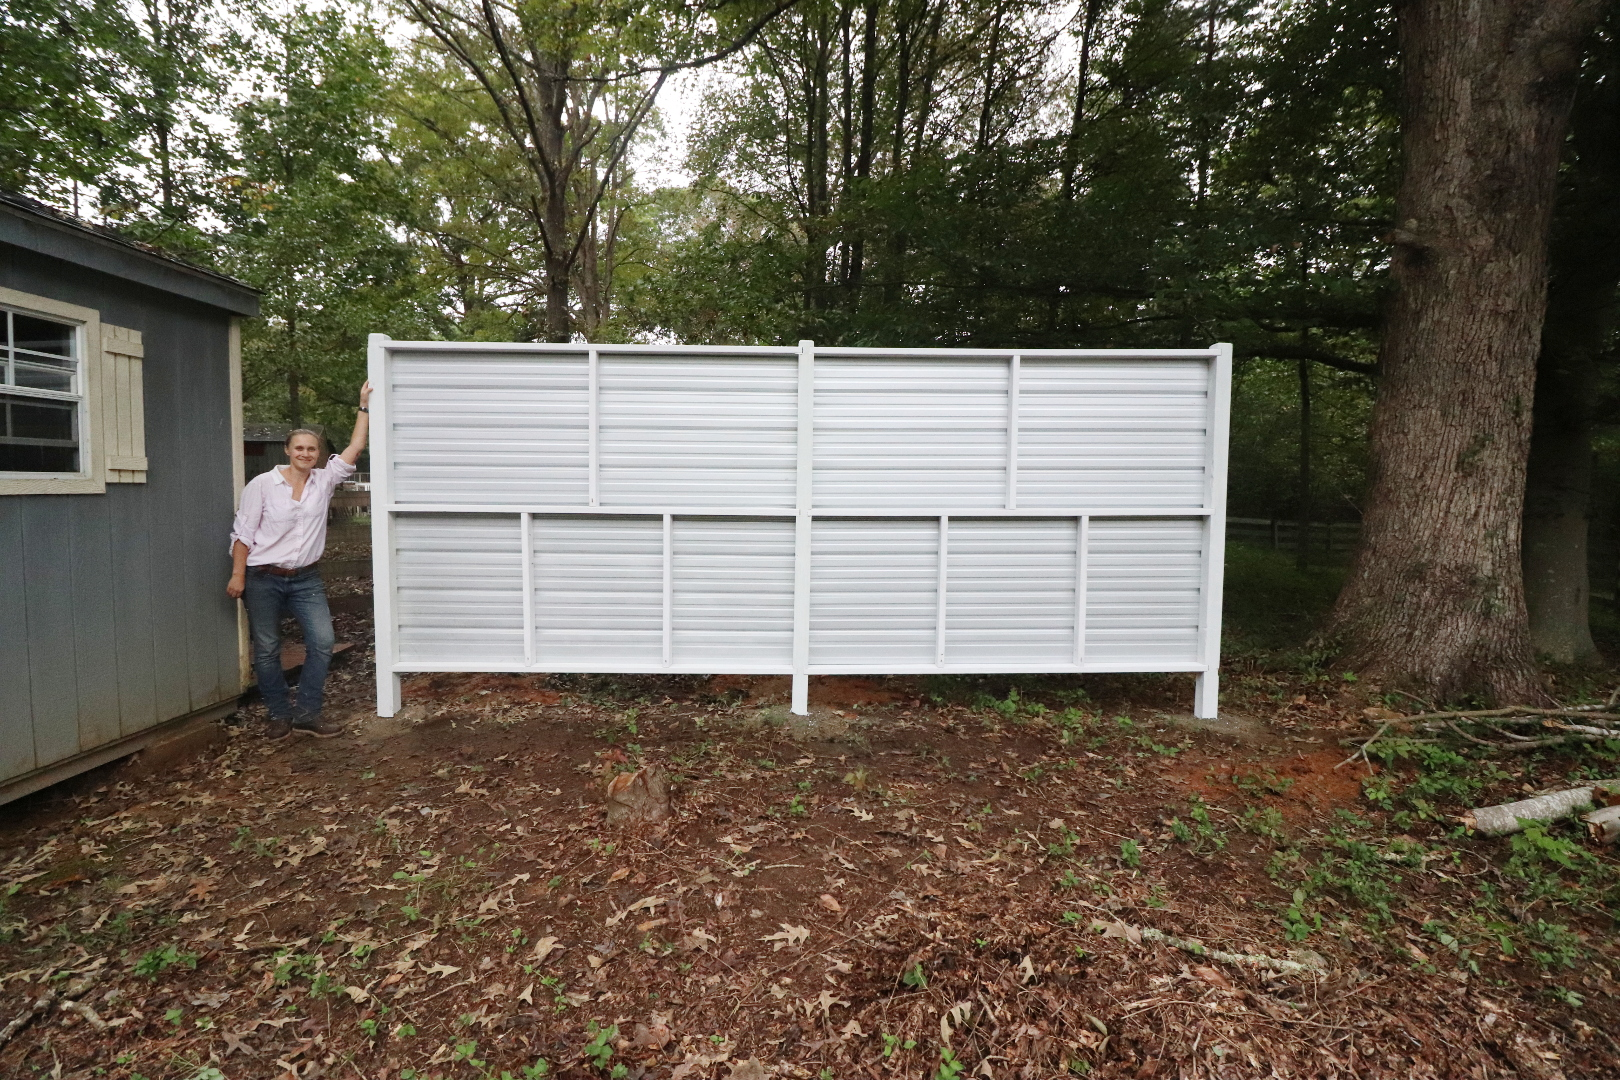 Privacy fence made with corrugated metal panels.